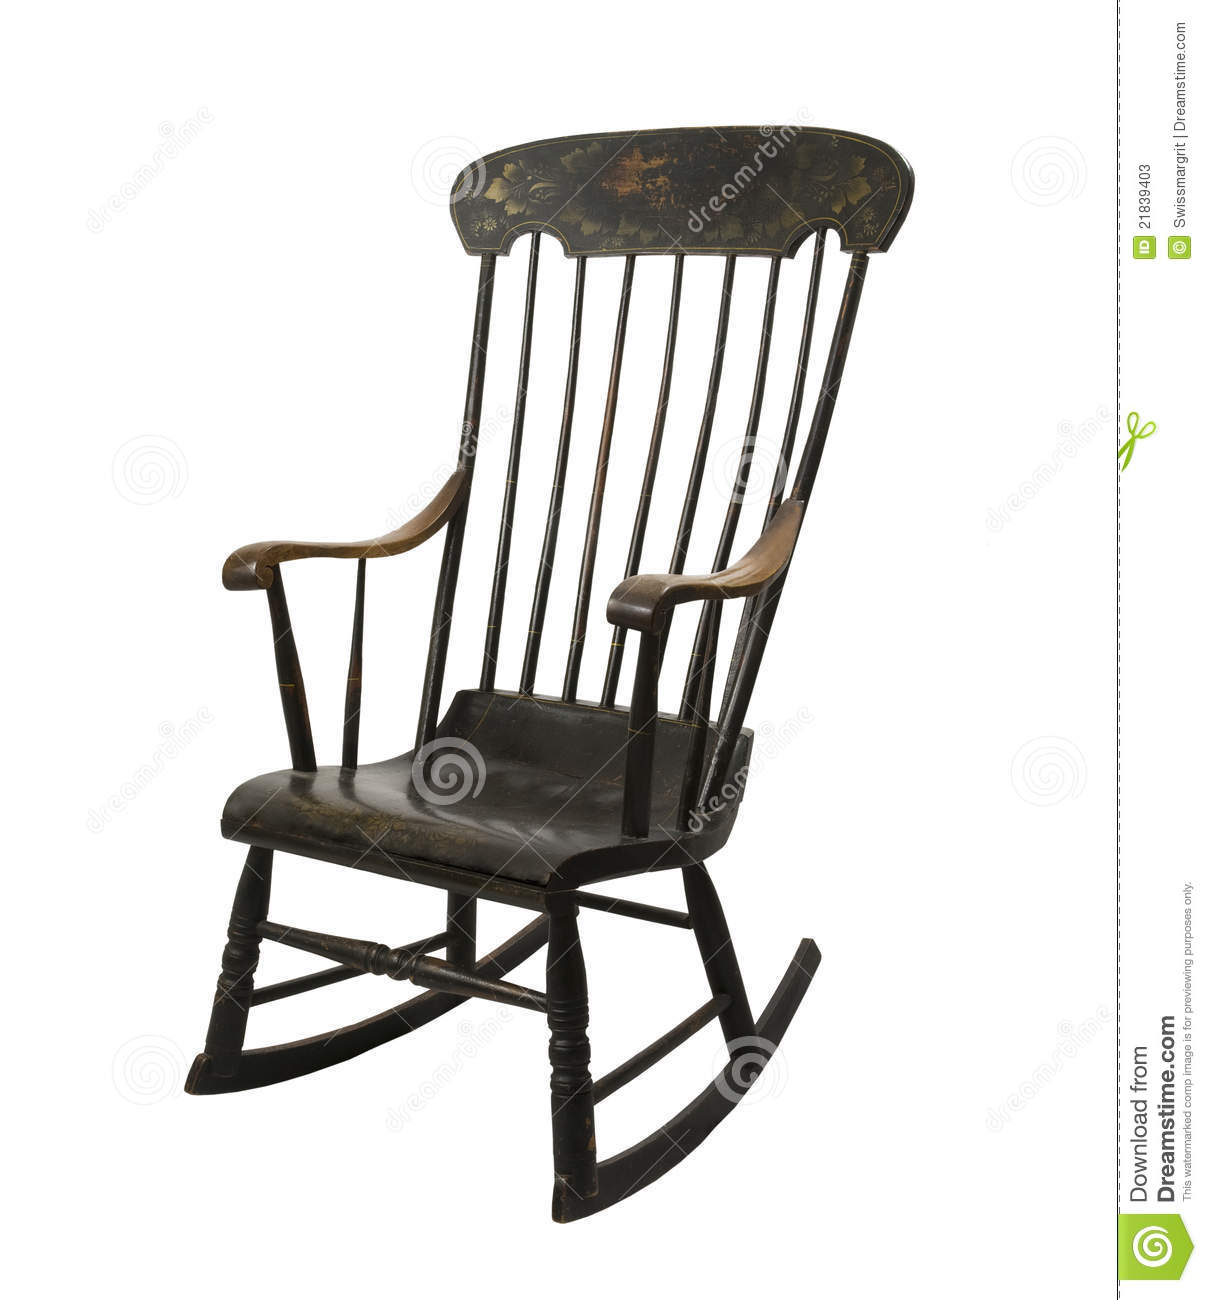 swing chair drawing royal chairs for rent antique handmade rocking stock image 21839403